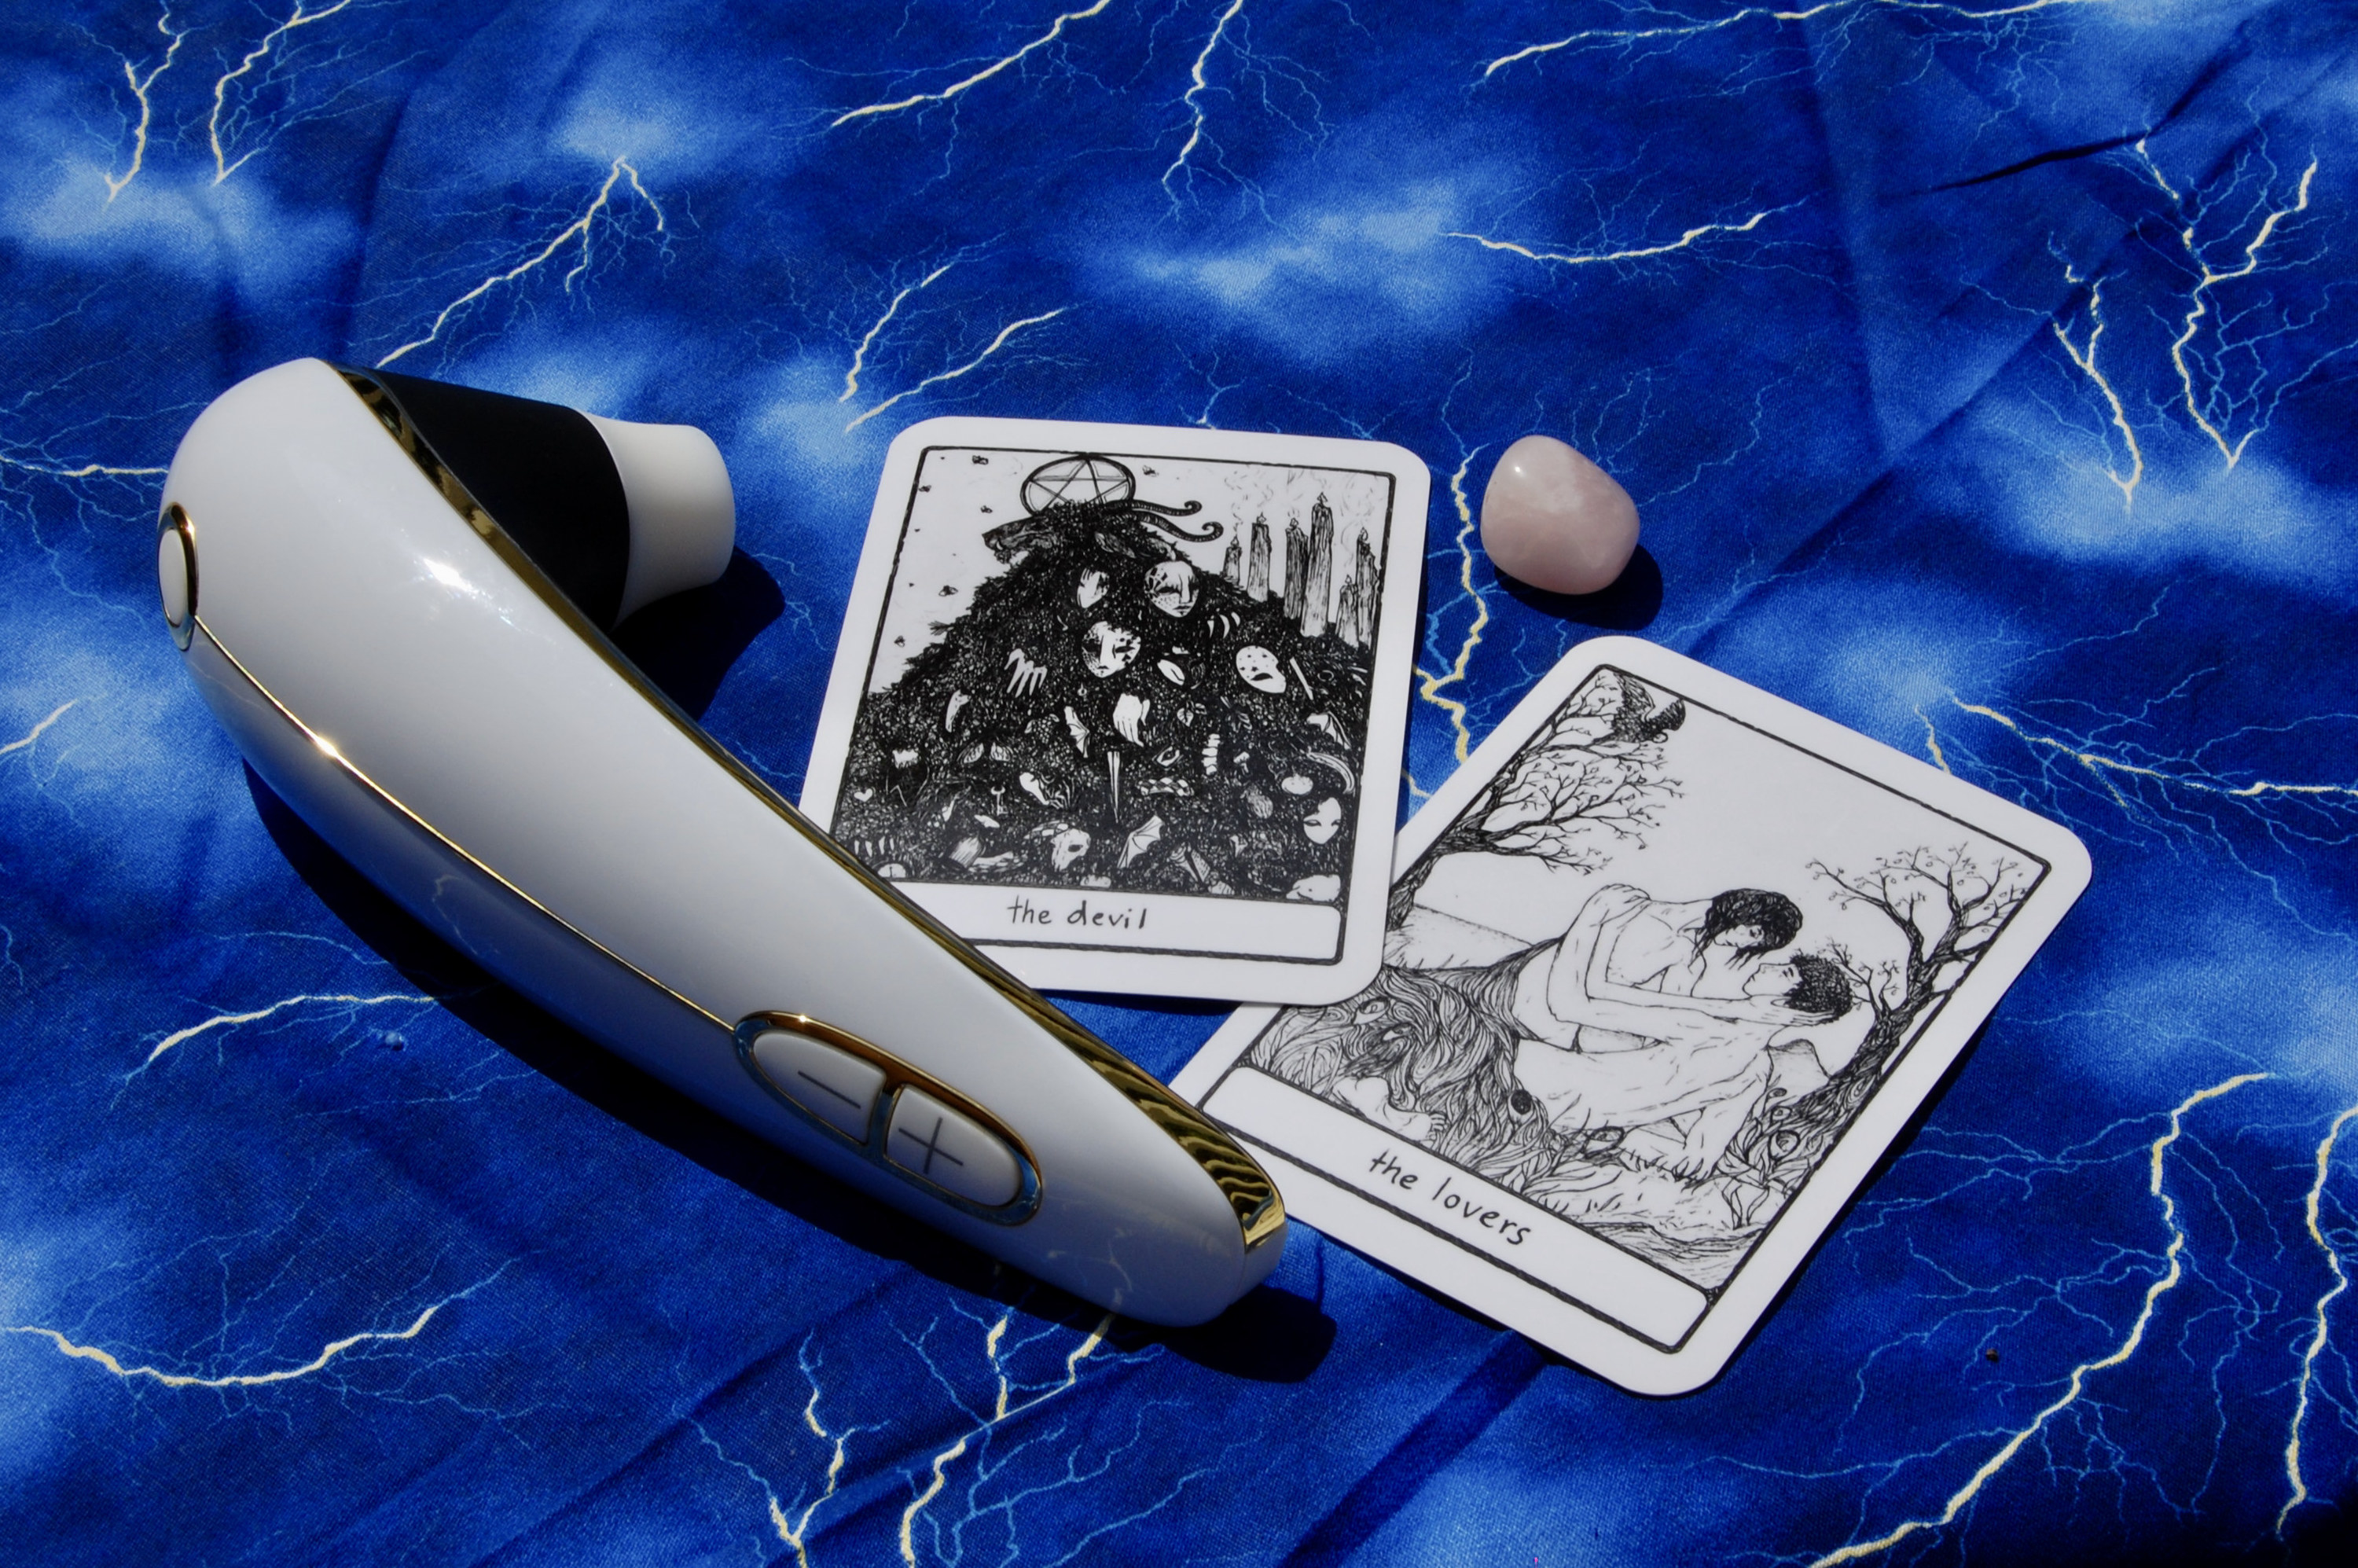 Photo of the Womanizer with two tarot cards (the Devil and the Lovers), plus a small crystal